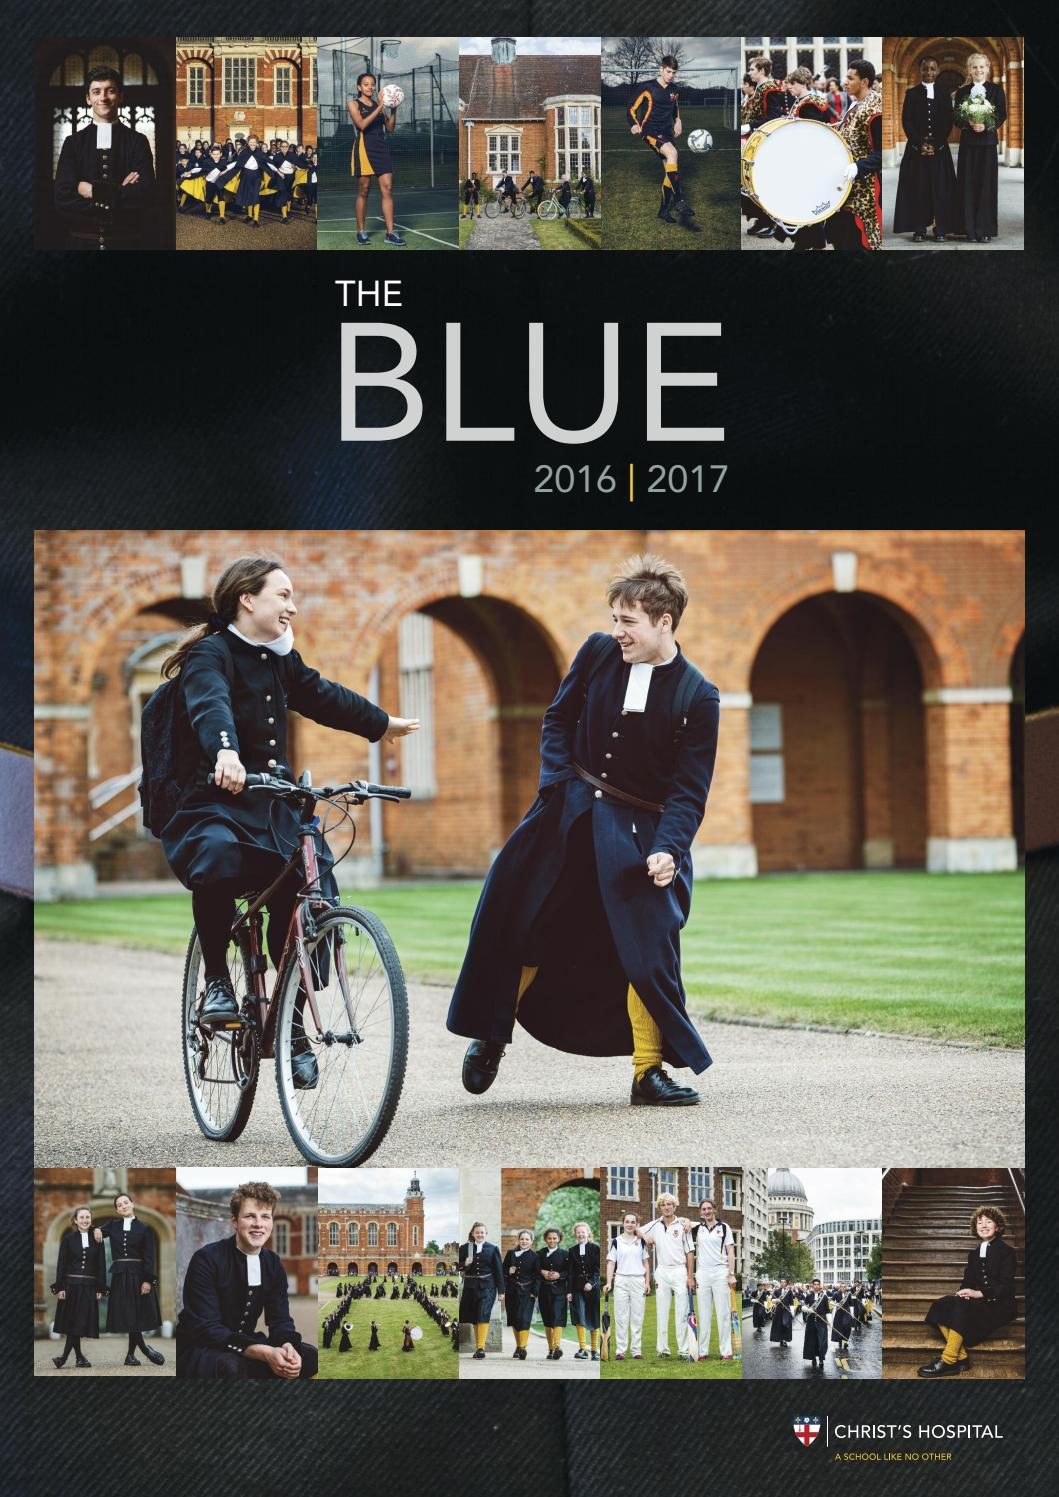 The Blue 2016/17 by AAH (All About Horsham) - issuu Ezgo Golf Cart Kes Luxury Ke Drum Pair Txt Ebay on